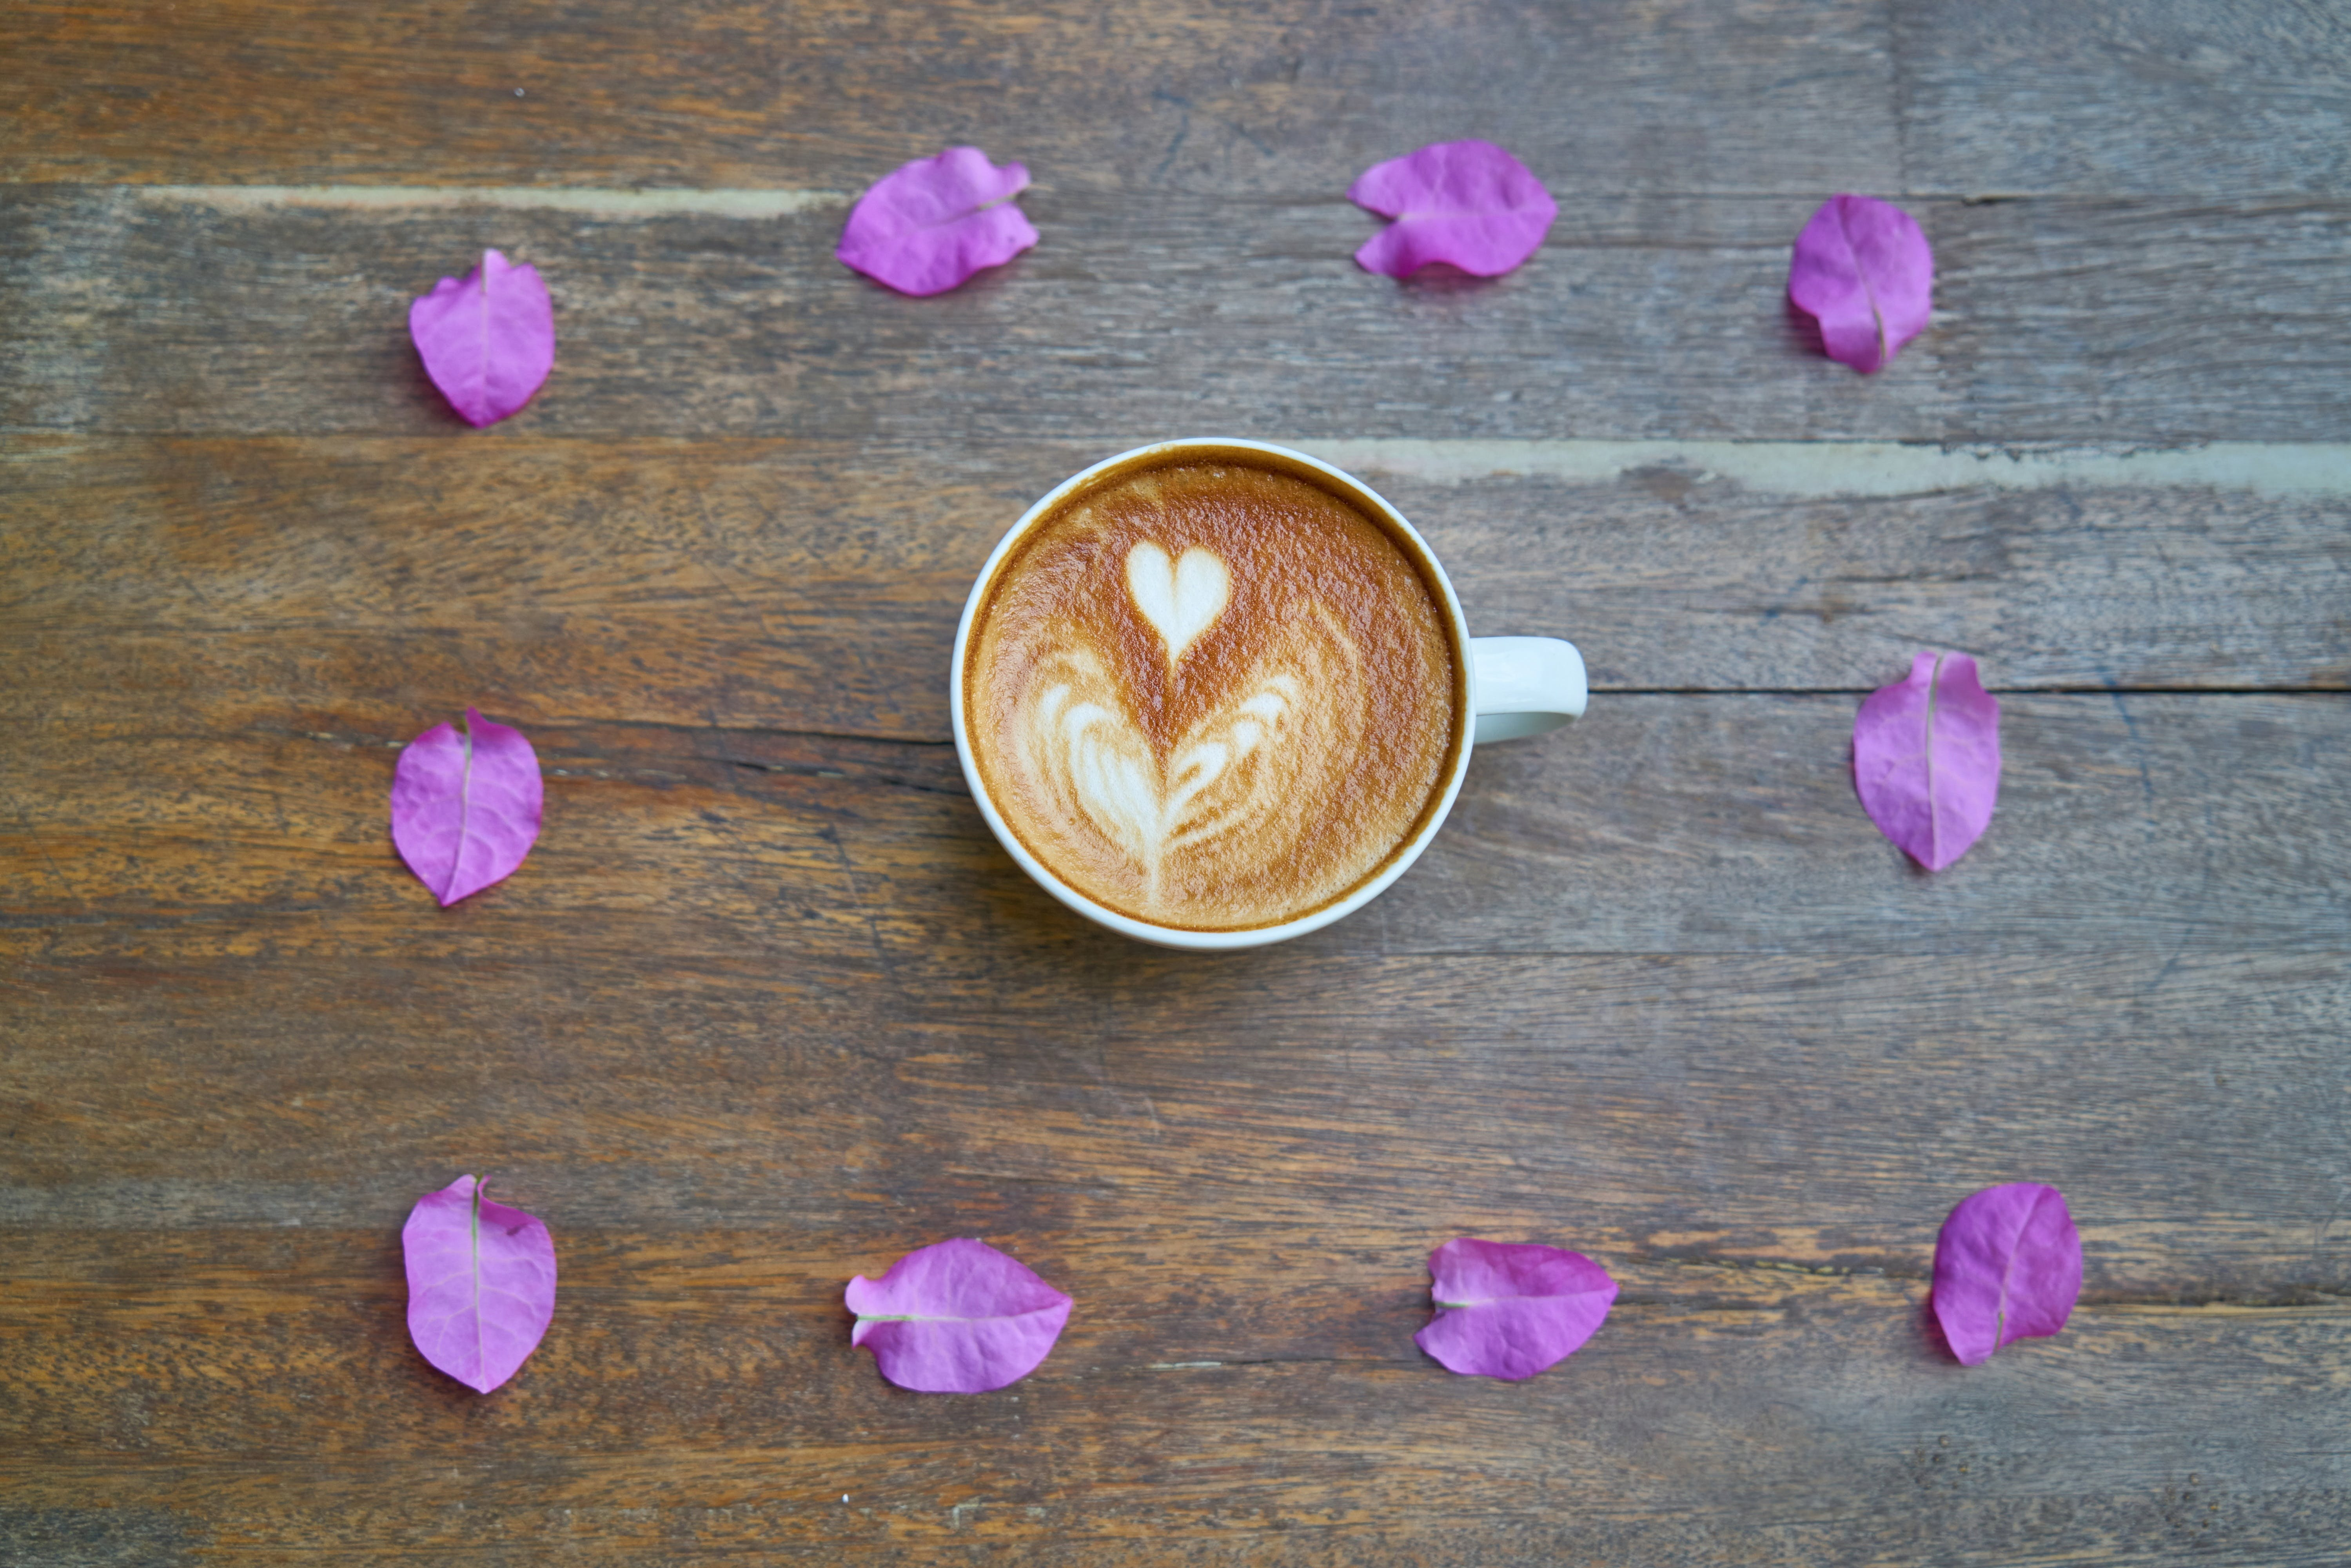 Cup of Cappuccino and Purple Petals